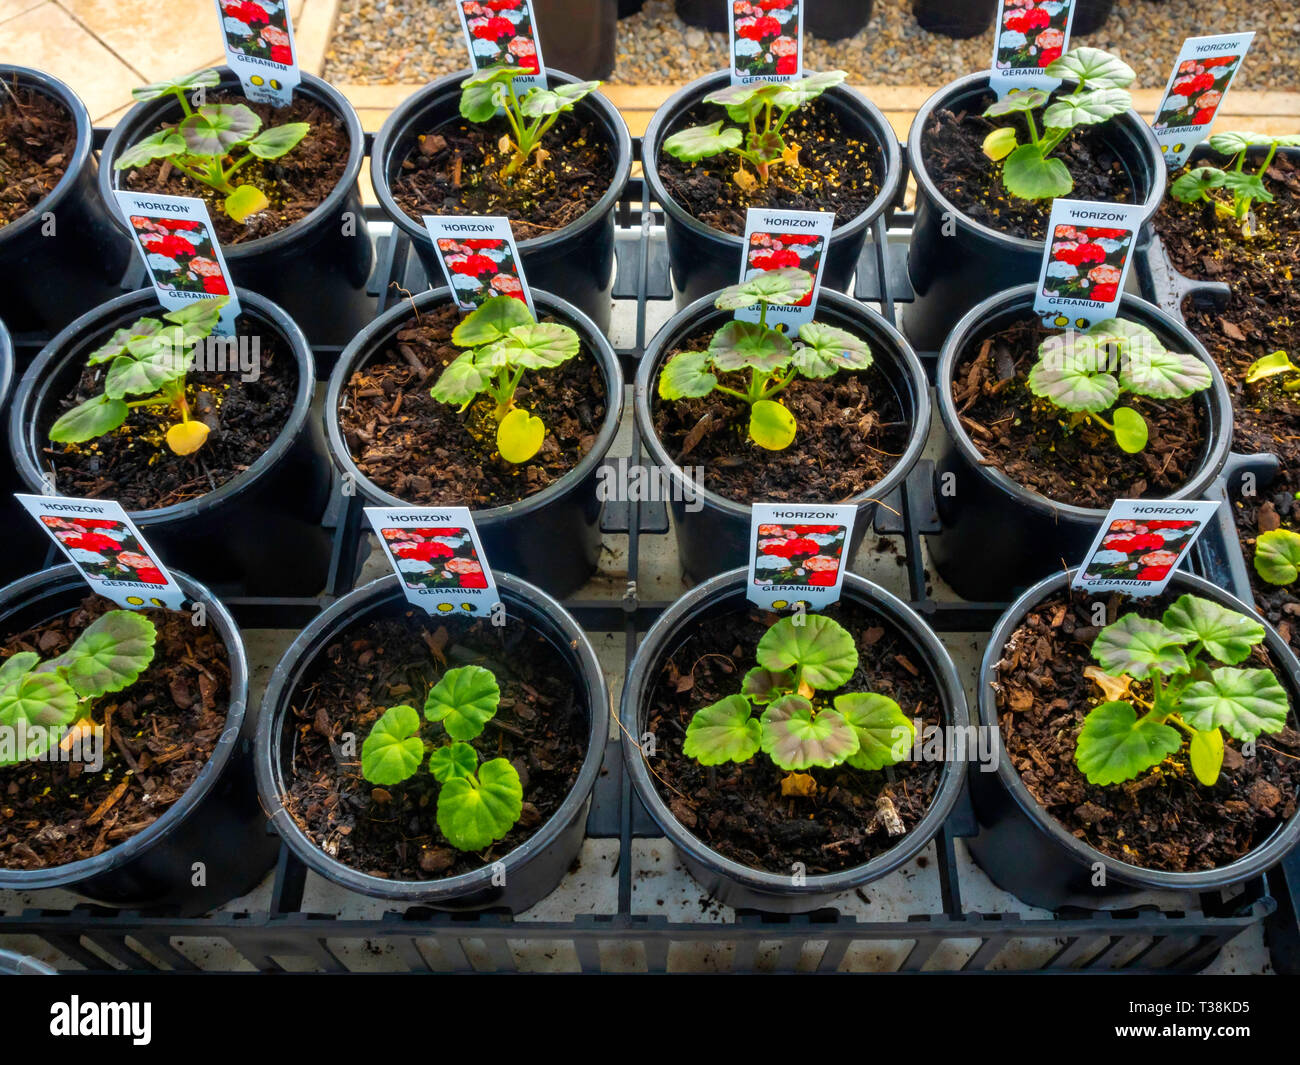 Plant nursery display of young flower plants in a greenhouse in early spring Geraniums for later sale as bedding plants for planting. Stock Photo